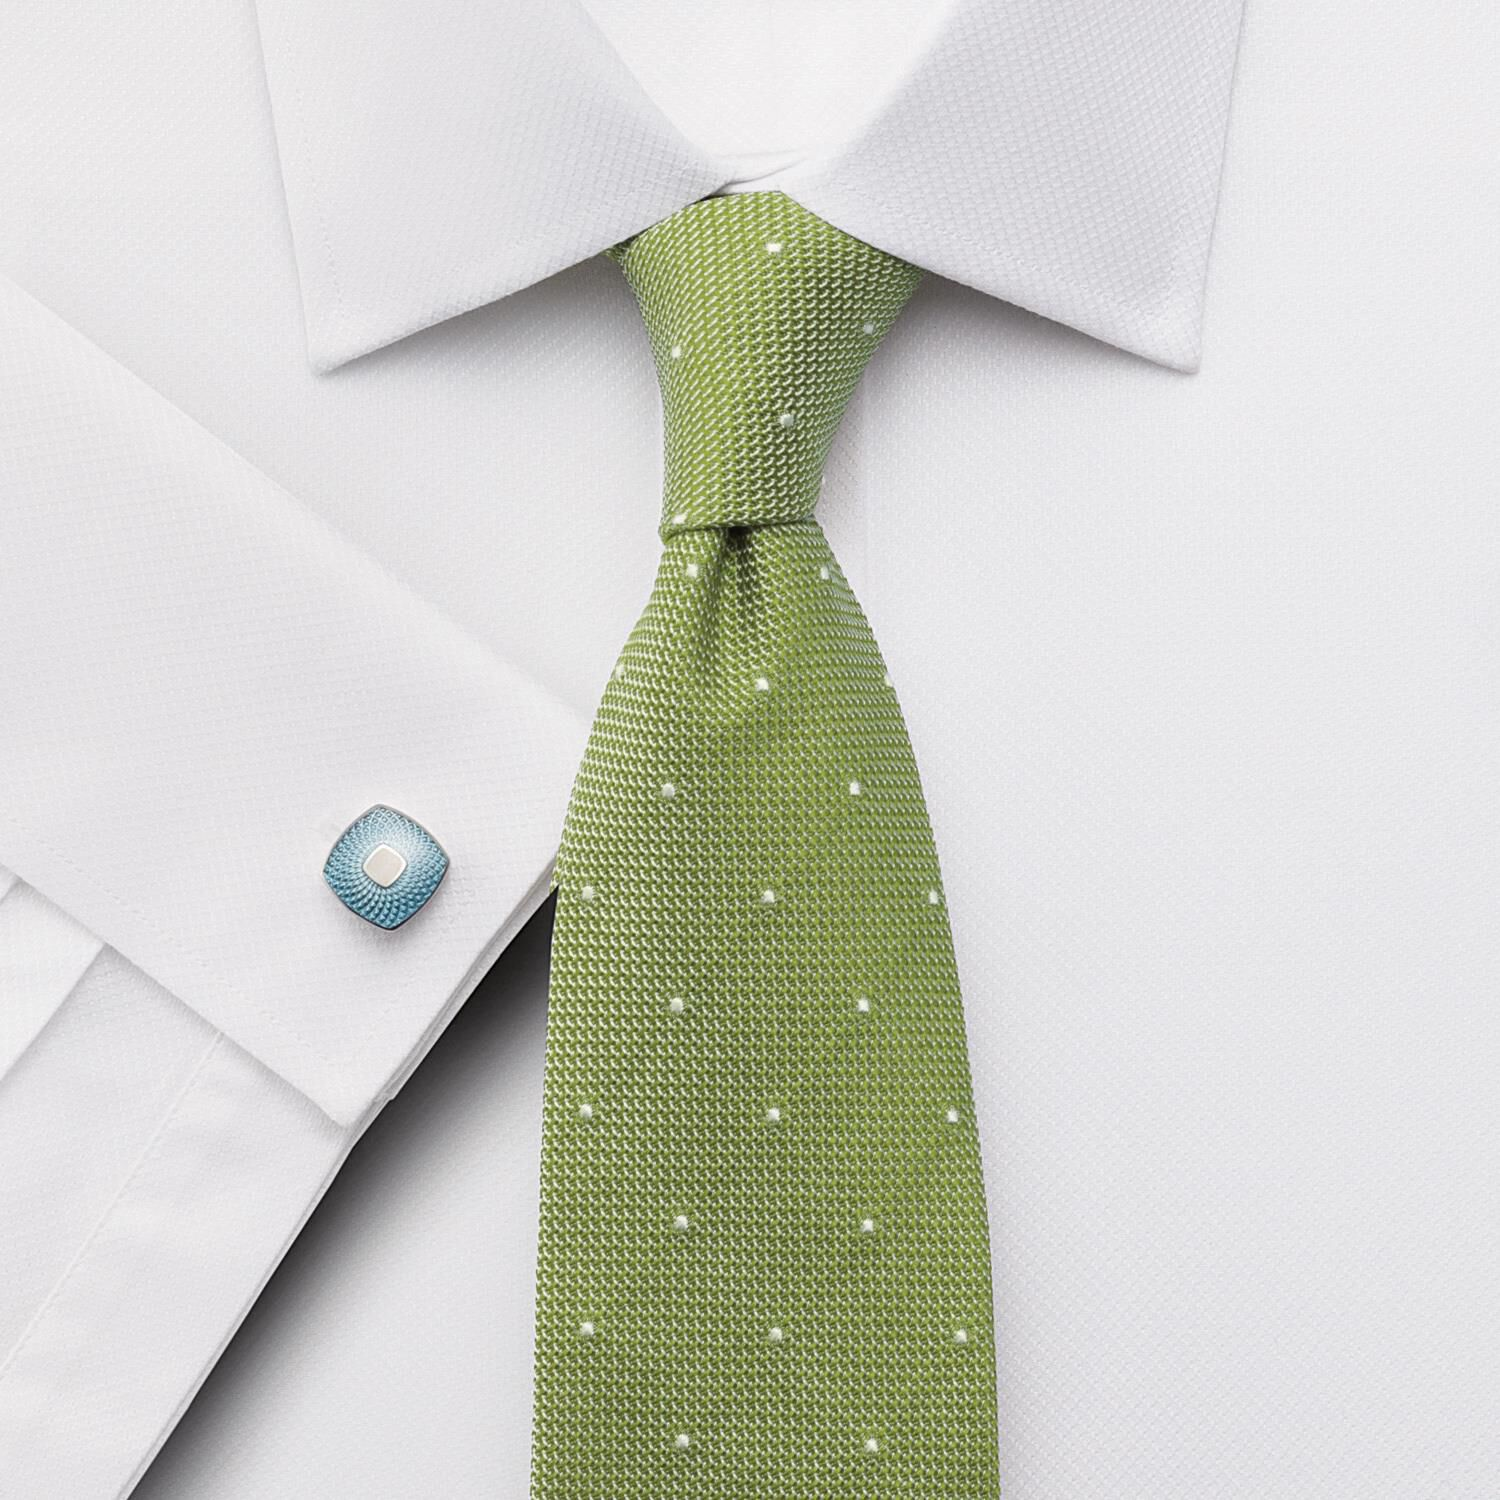 Classic Fit Egyptian Cotton Puppytooth White Formal Shirt Single Cuff Size 15.5/37 by Charles Tyrwhi